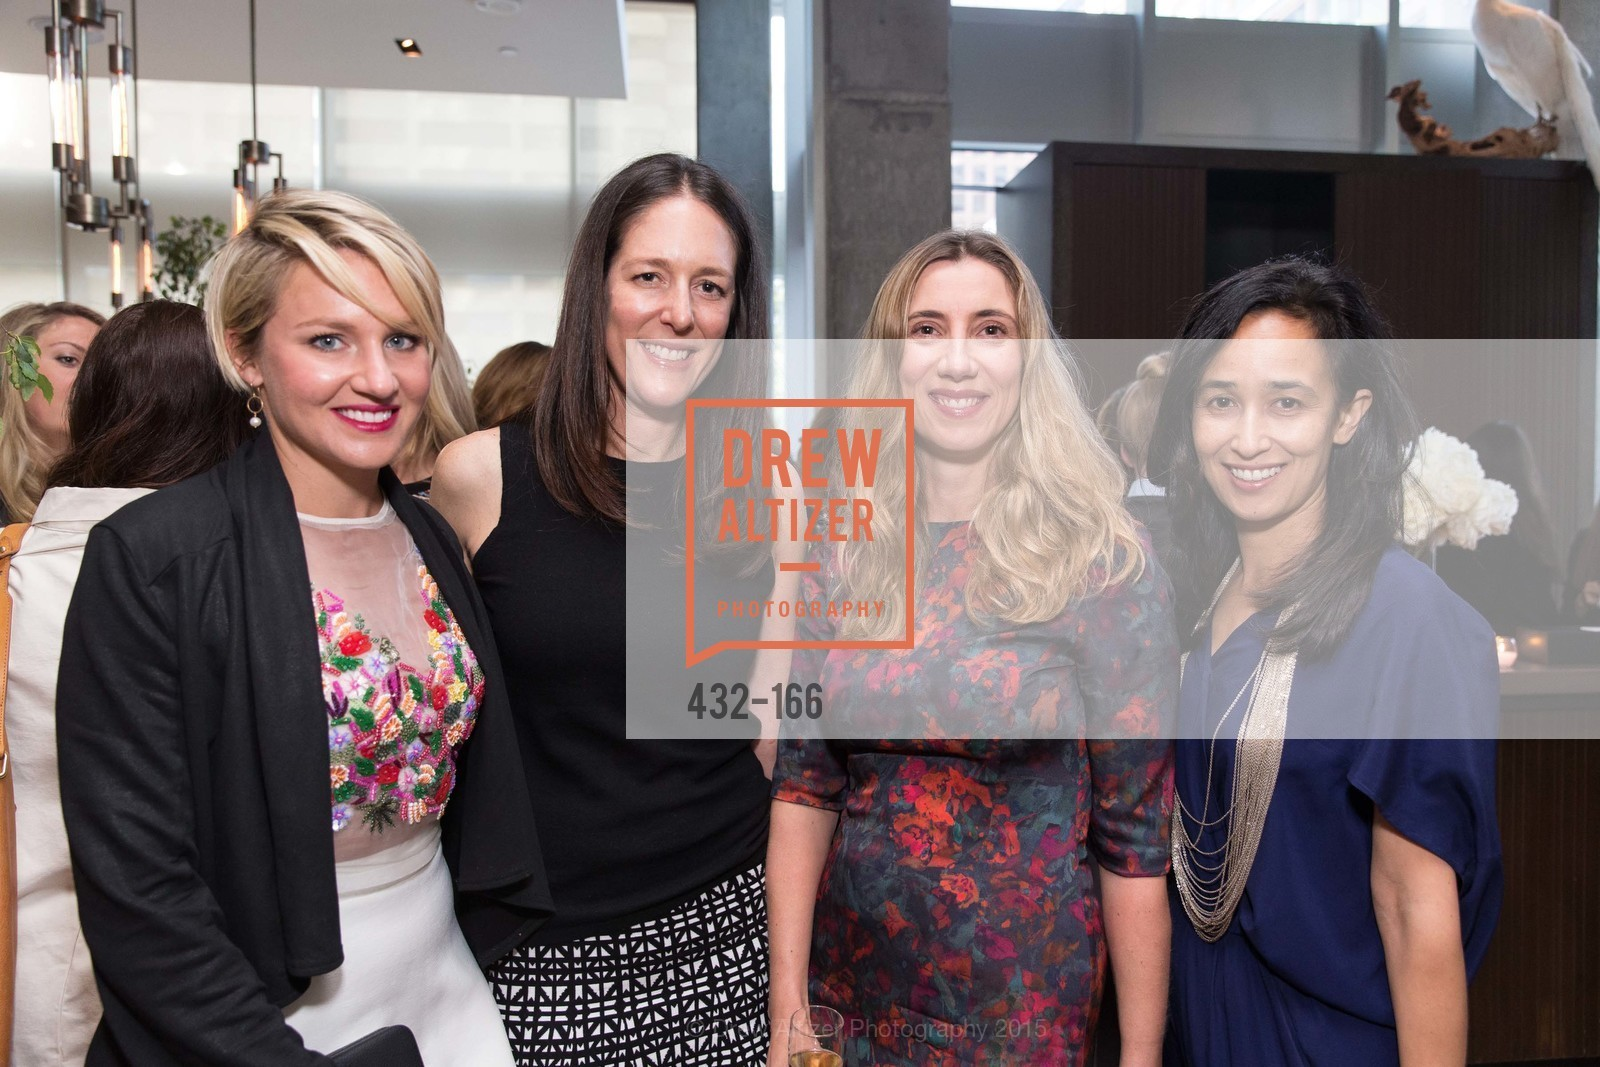 Maghan McDowell, Lisa Tarter, Shari Jones, Mariam Naficy, Elle Women in Tech, Prospect. 300 Spear Street, June 15th, 2015,Drew Altizer, Drew Altizer Photography, full-service agency, private events, San Francisco photographer, photographer california